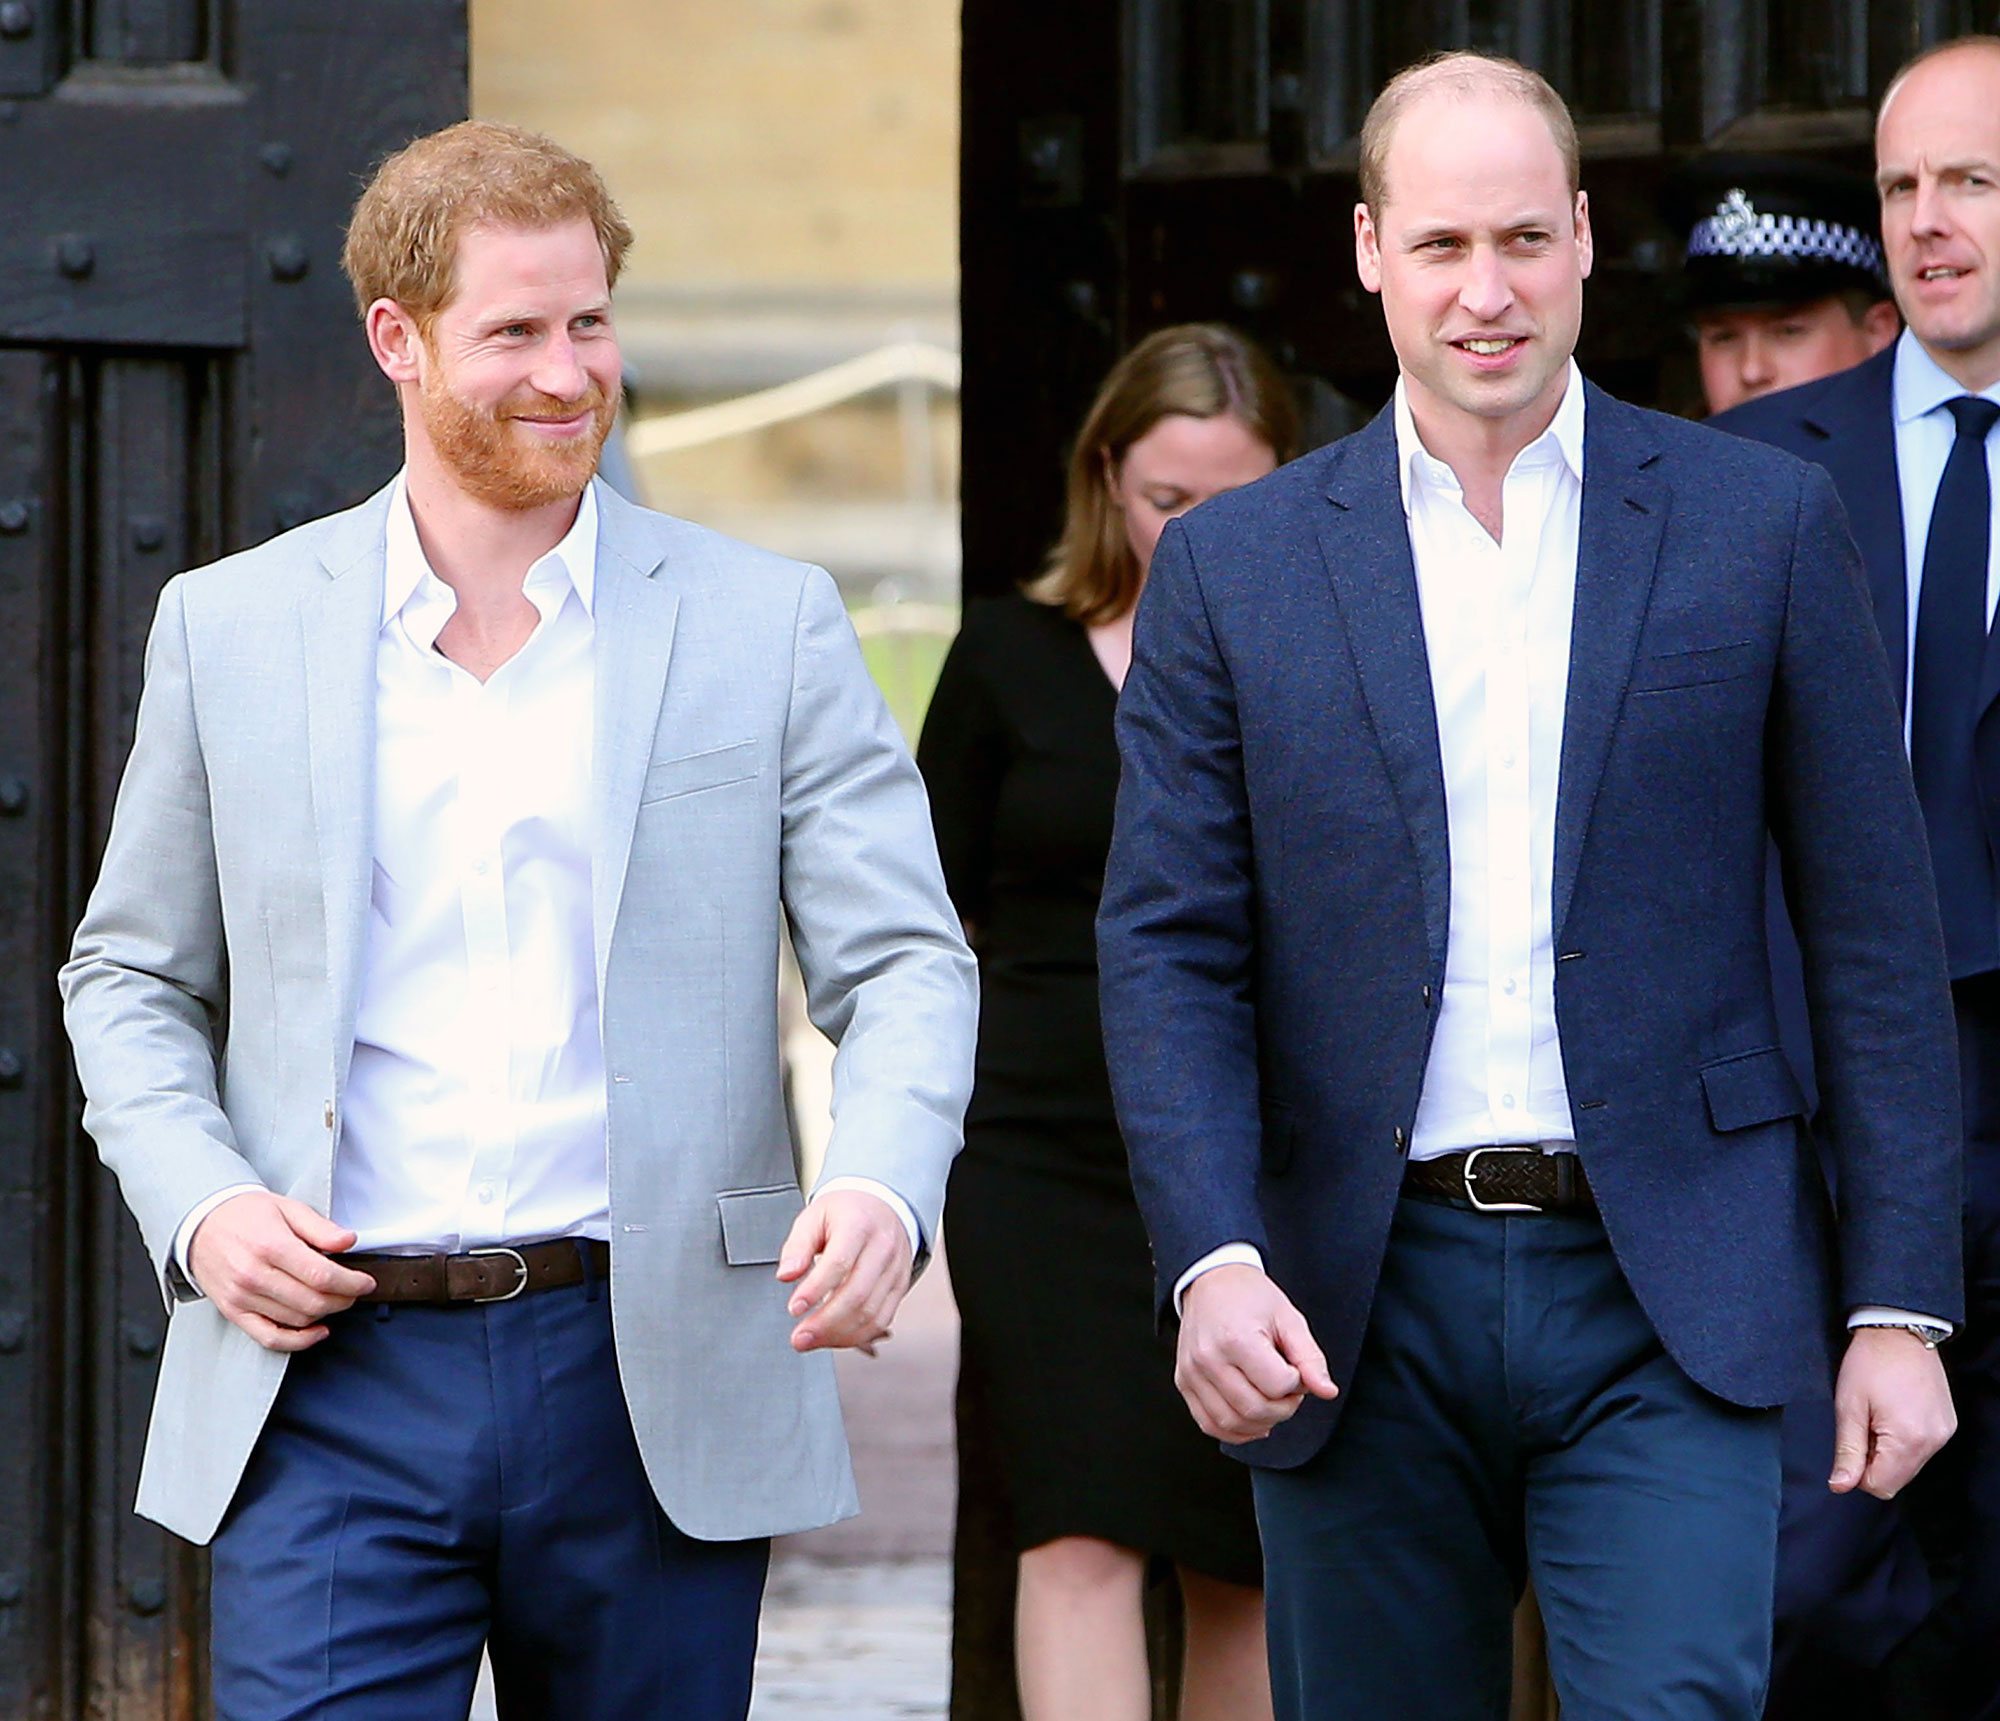 Prince Harry Is Leaning on Prince William as He Struggles With Move to LA